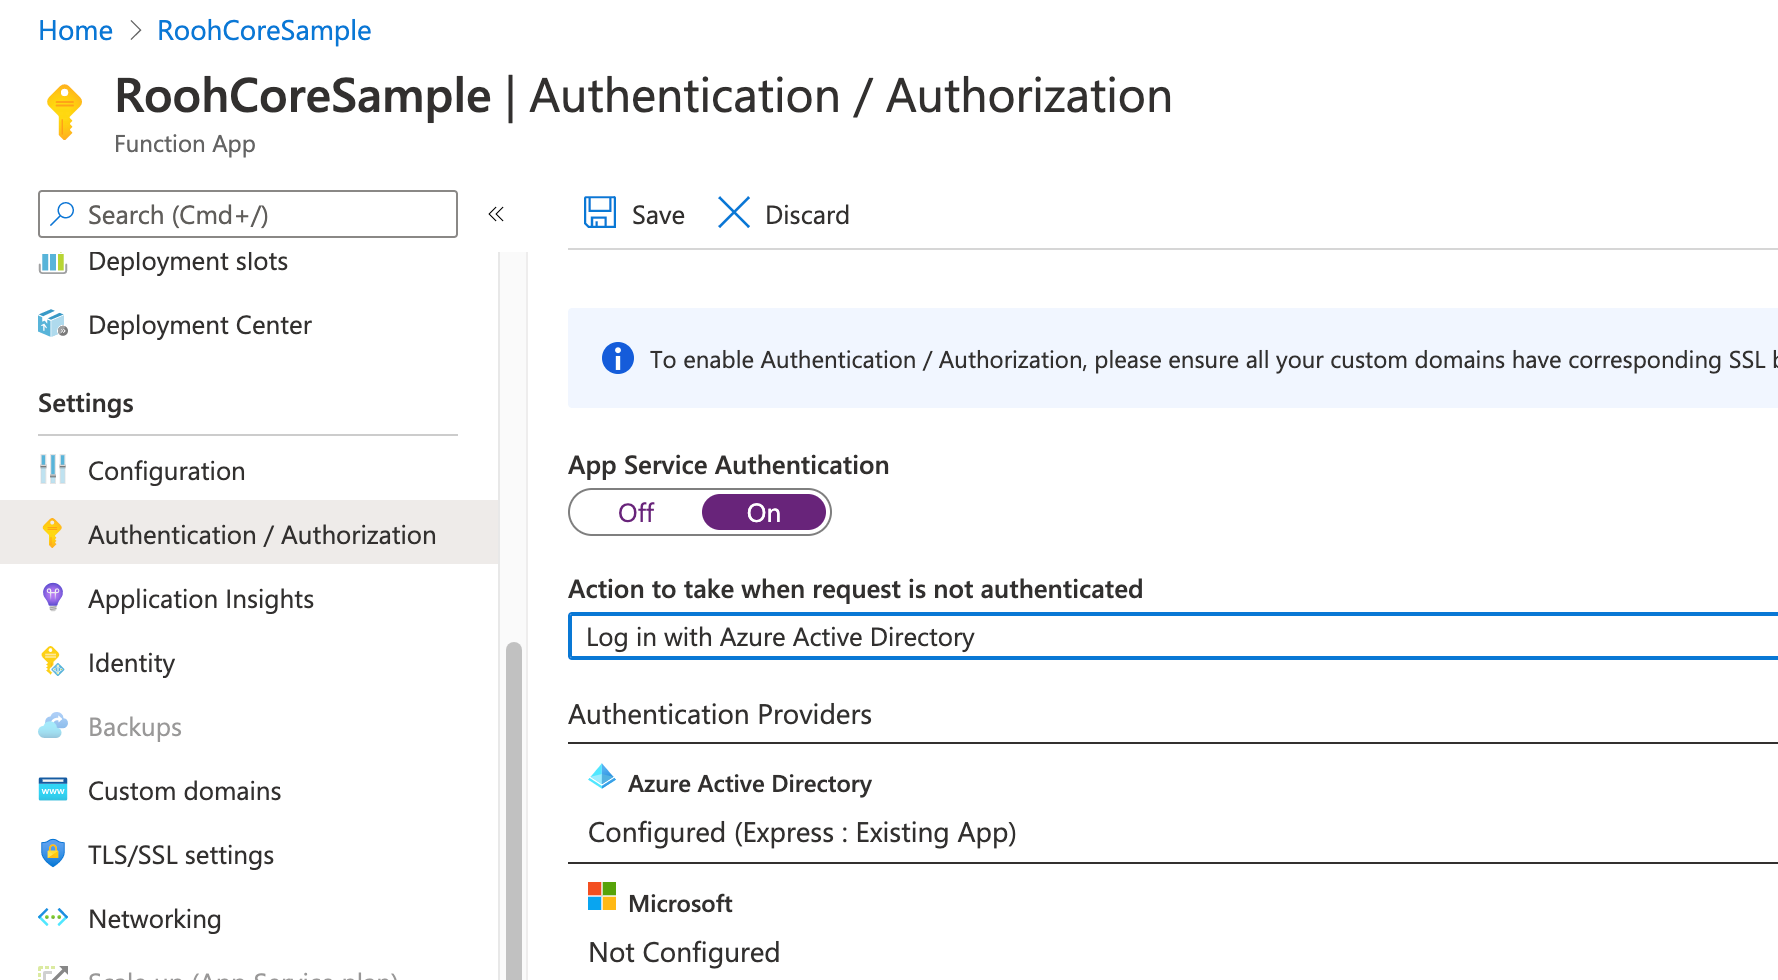 Power Apps and Power Automate Flows